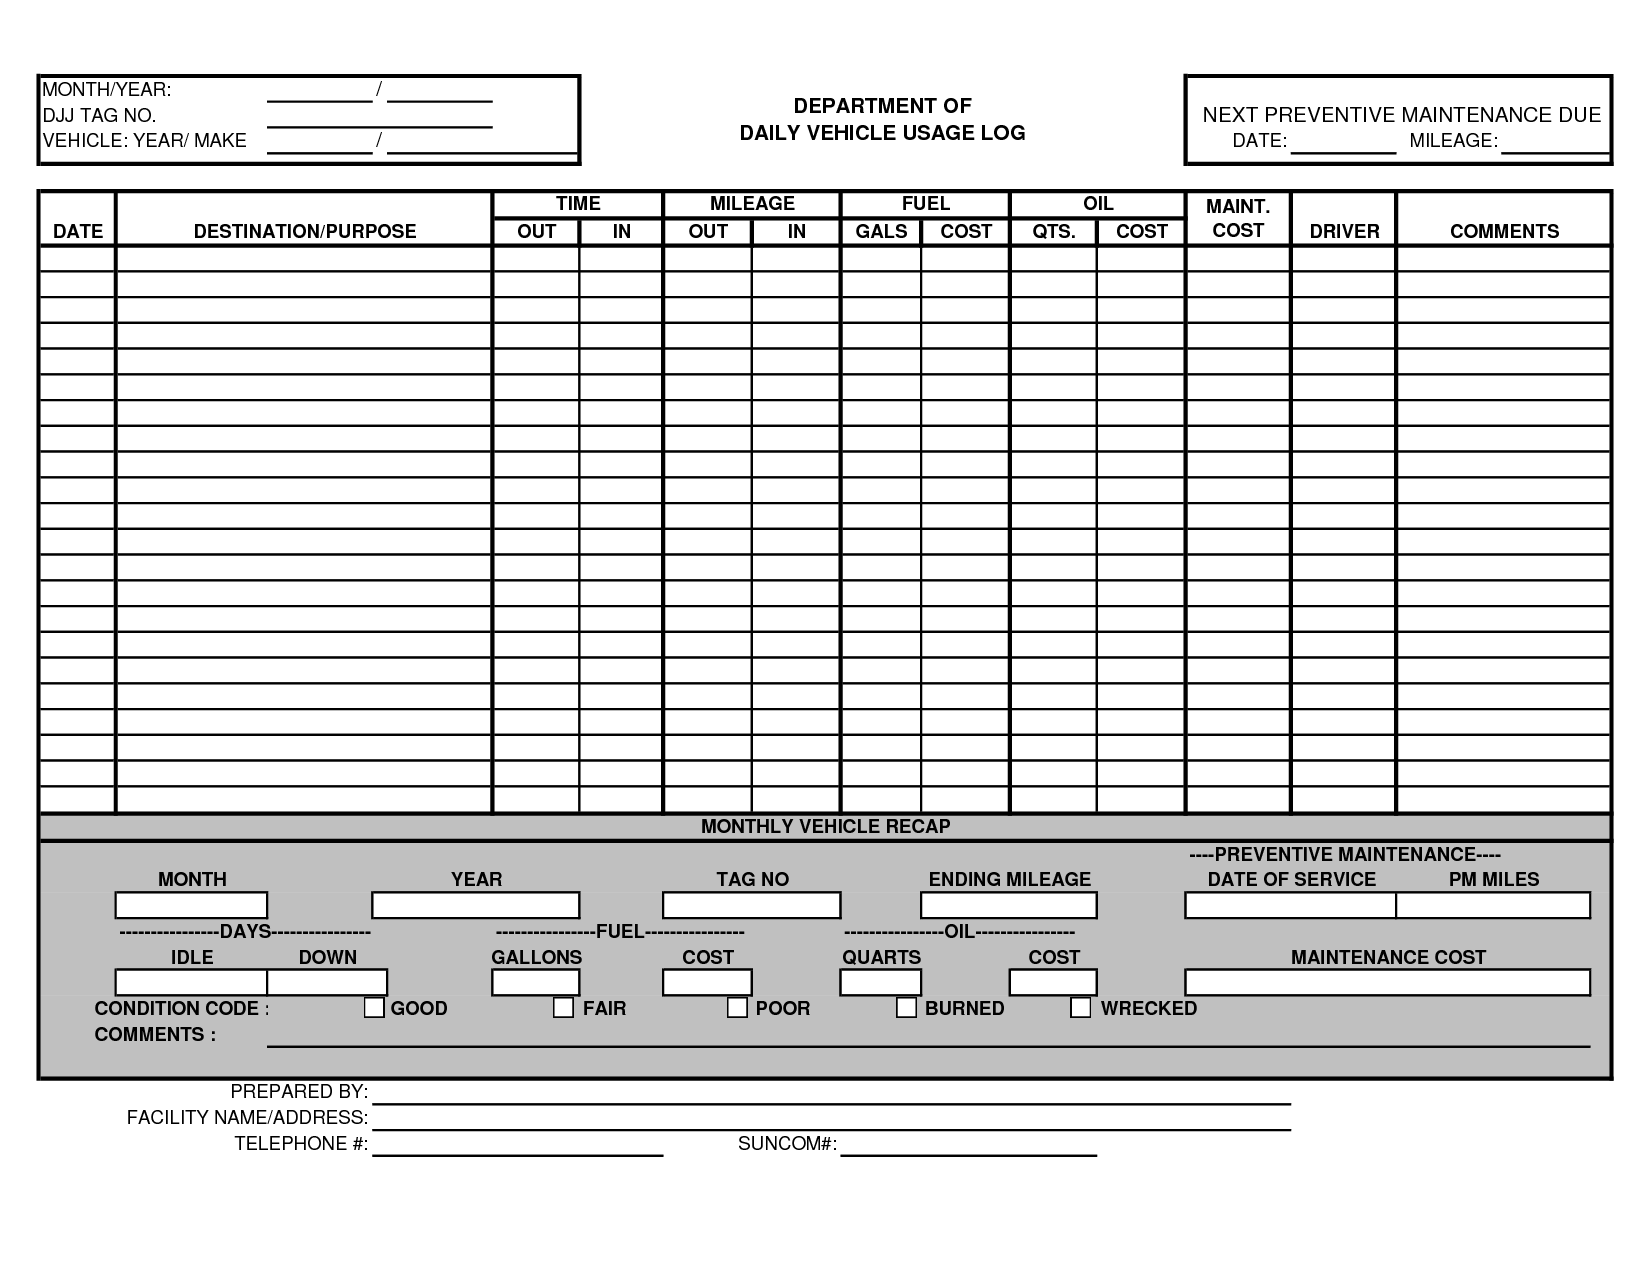 Vehicle Maintenance Log Template Excel http://www.lonewolf ...